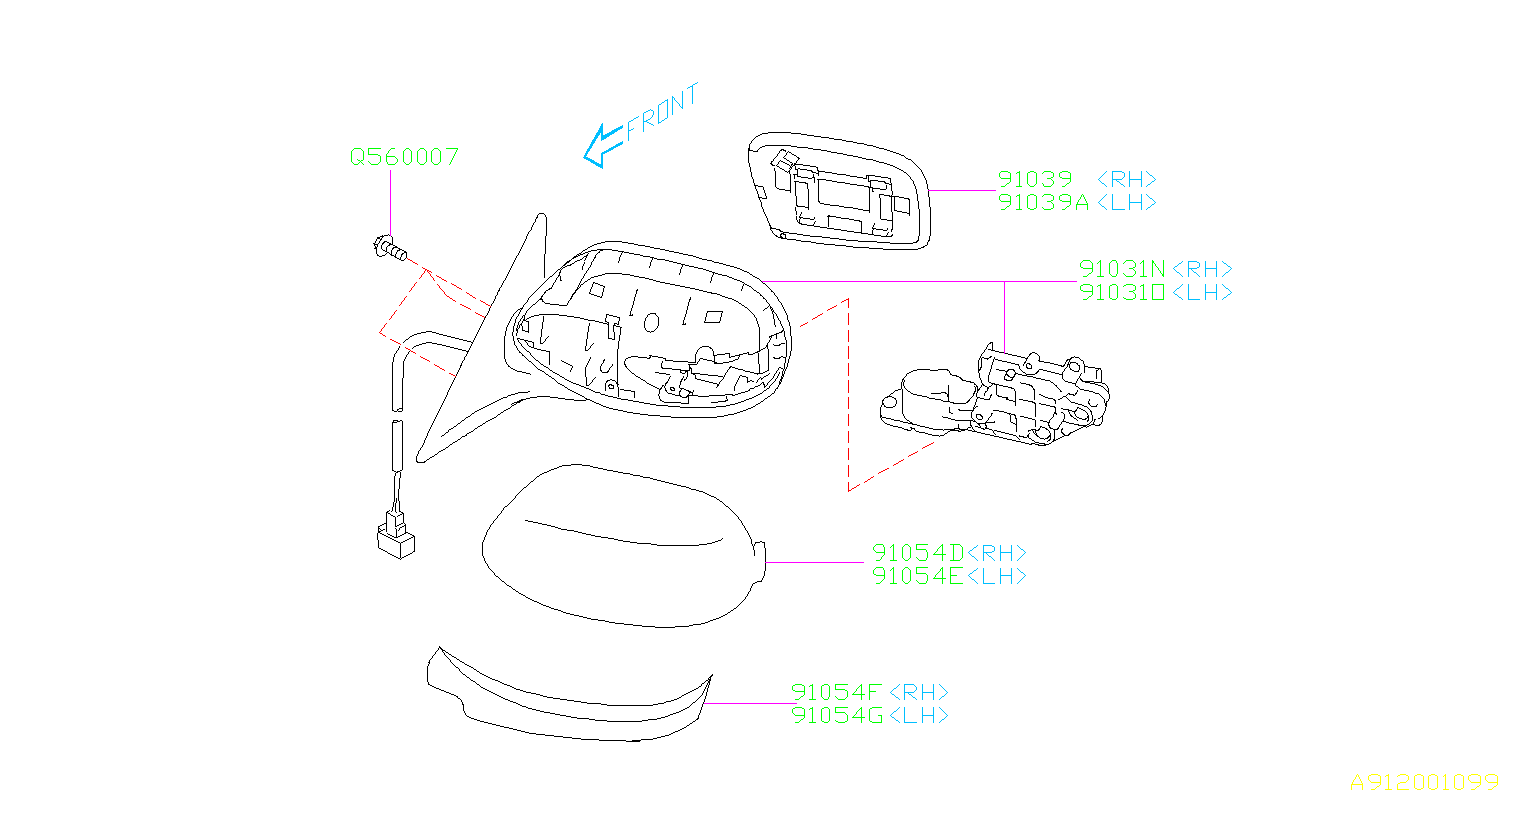 subaru mirror lower parts left rear cap right unit door diagram